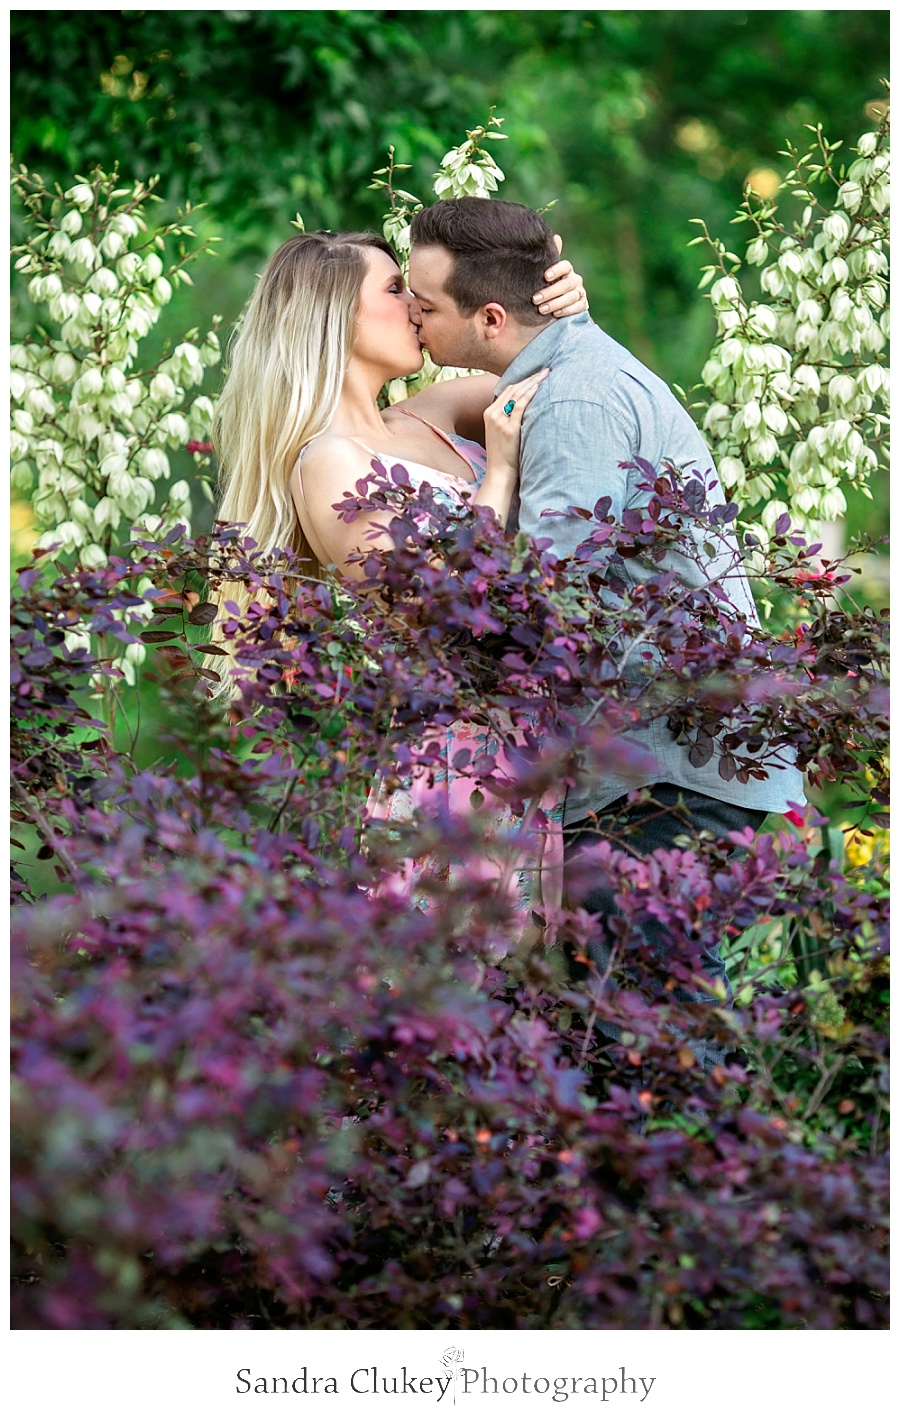 Passionate moment for couple in garden